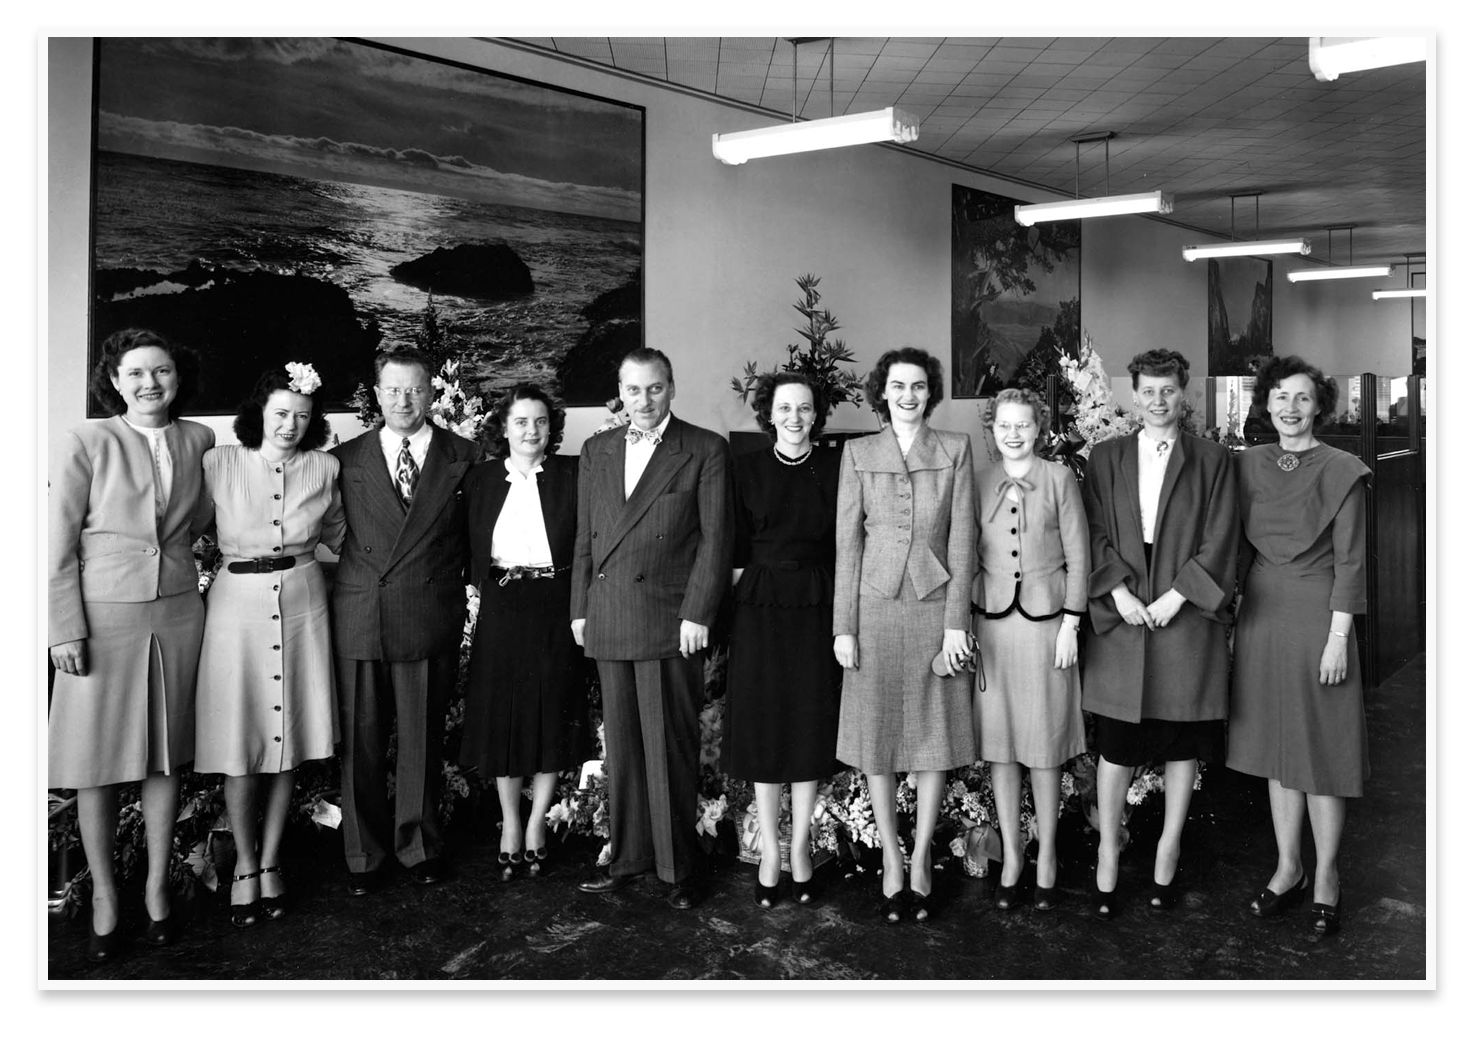 The original staff at the Wilshire Escrow offices.